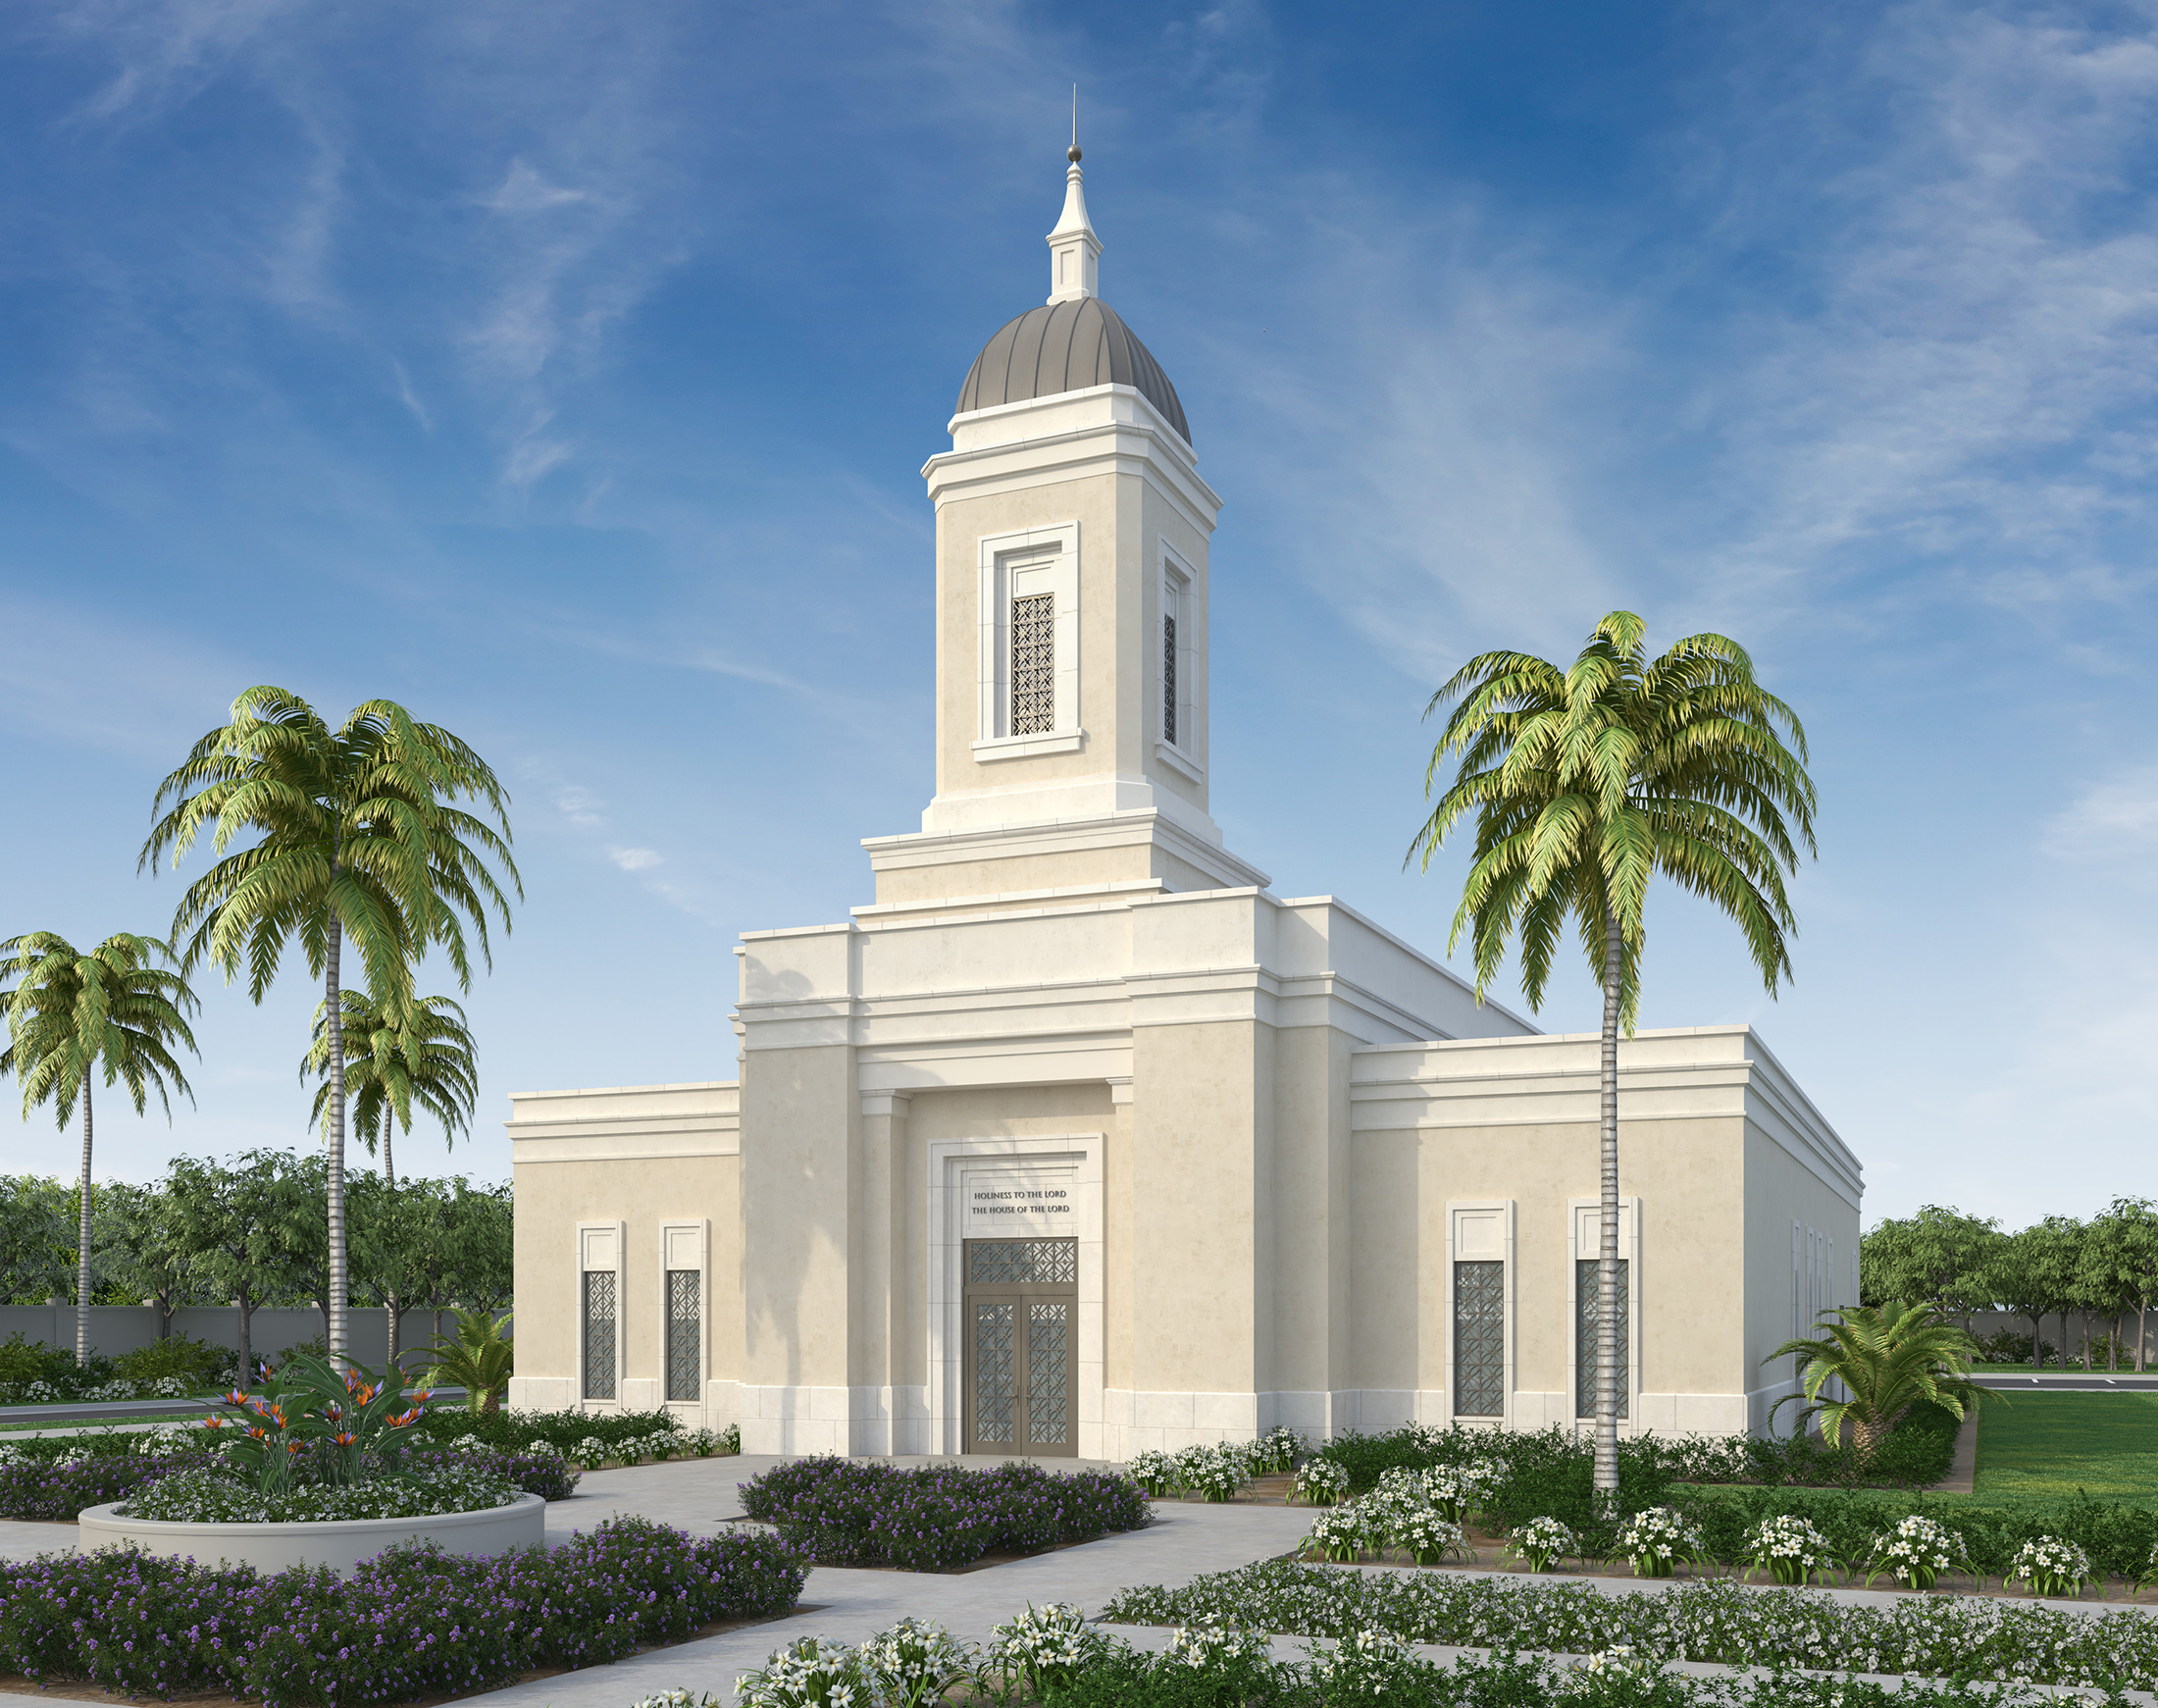 An artist rendering of the Yigo Guam Temple.